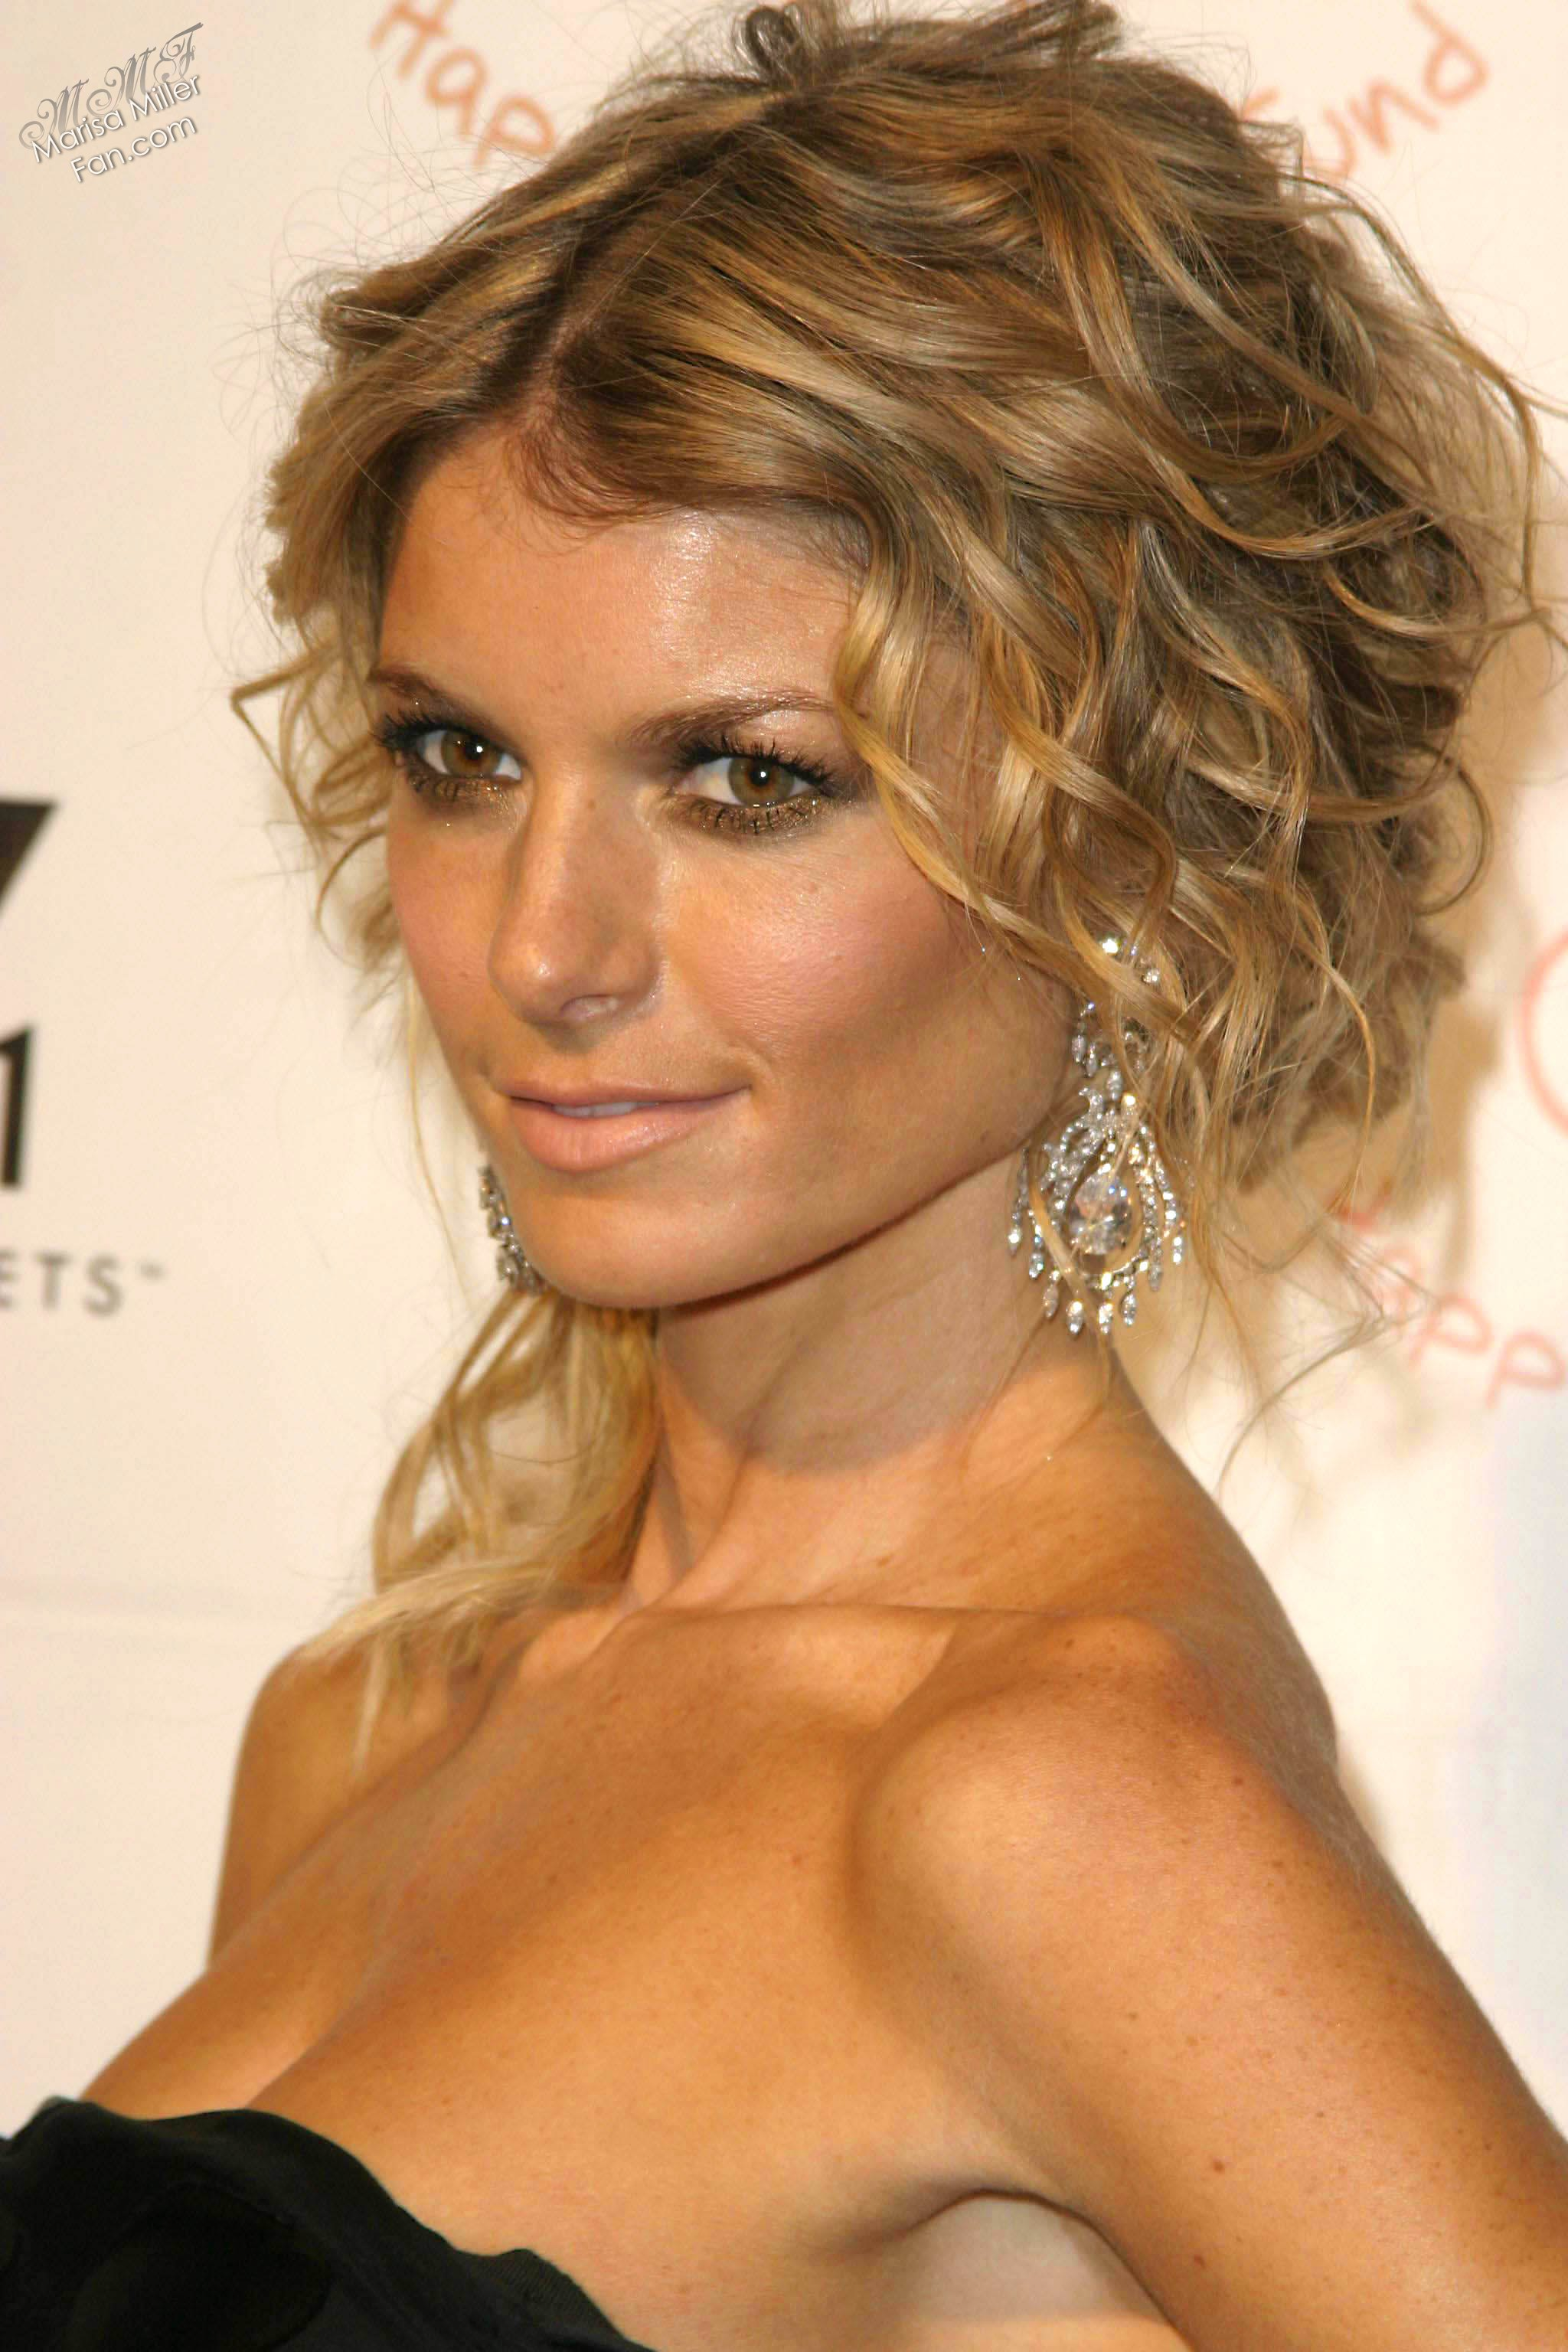 Marisa Miller photo 301 of 661 pics, wallpaper - photo ...